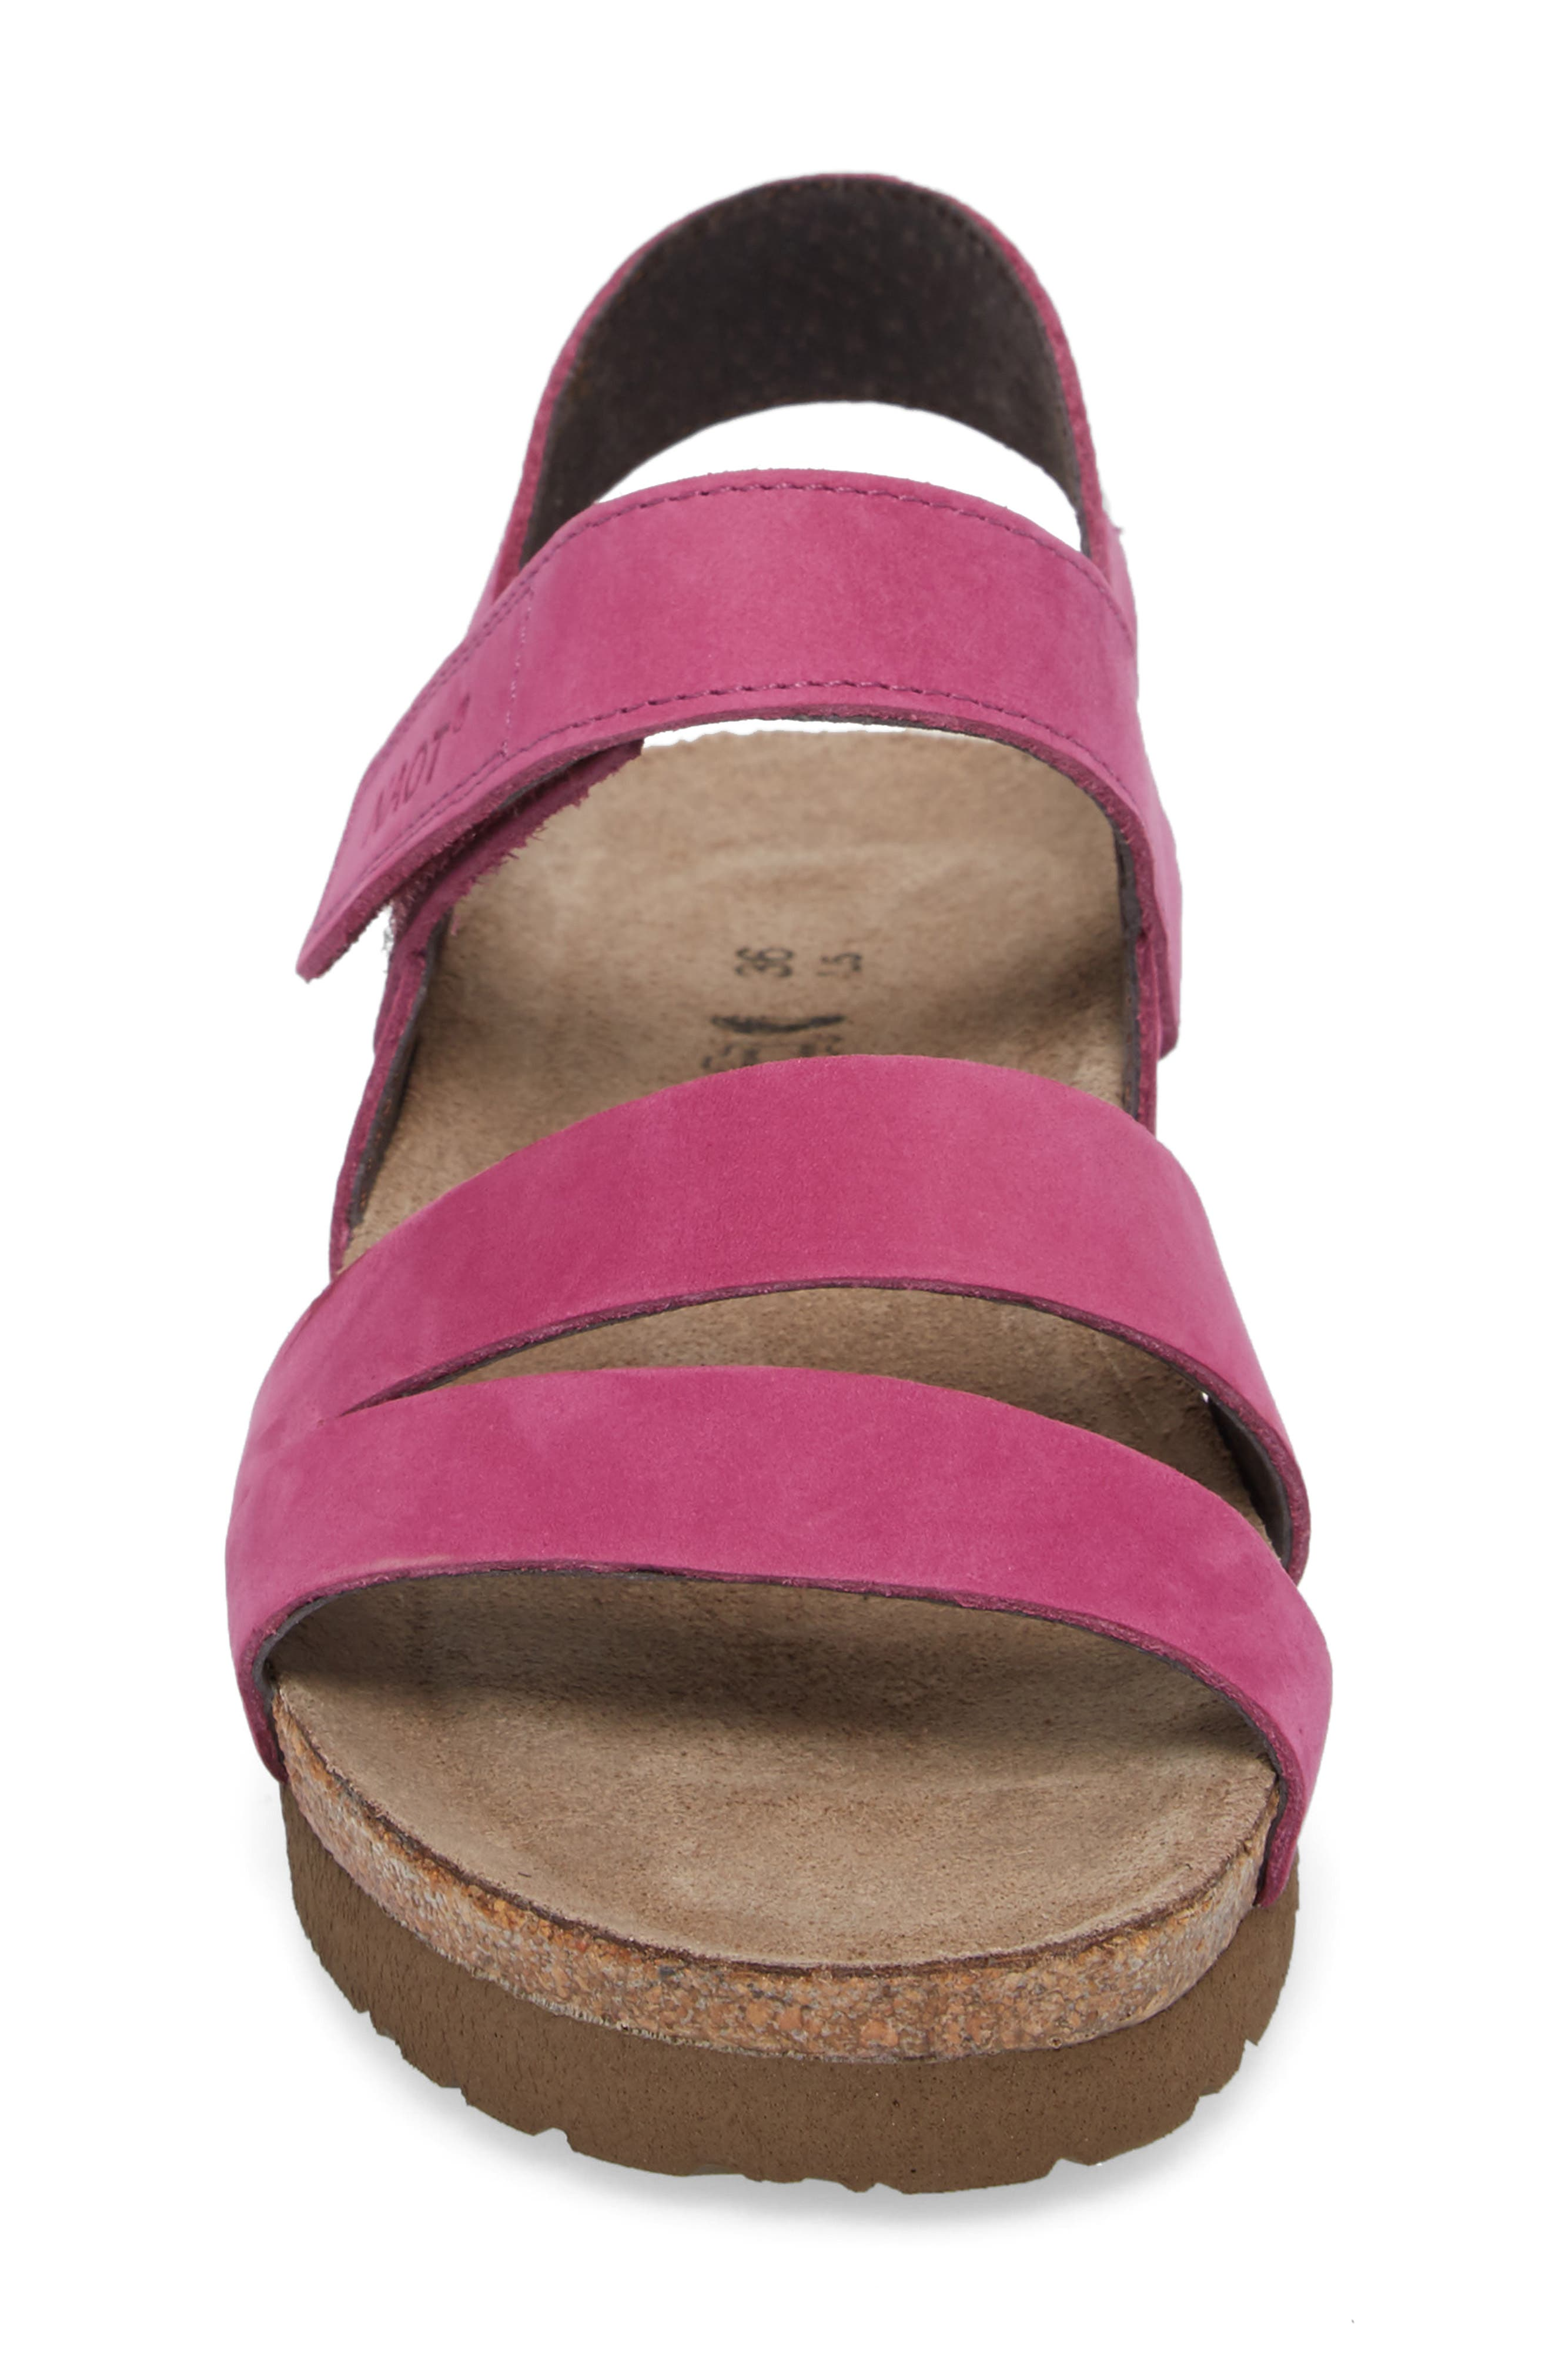 'Kayla' Sandal,                             Alternate thumbnail 4, color,                             Pink Plum Nubuck